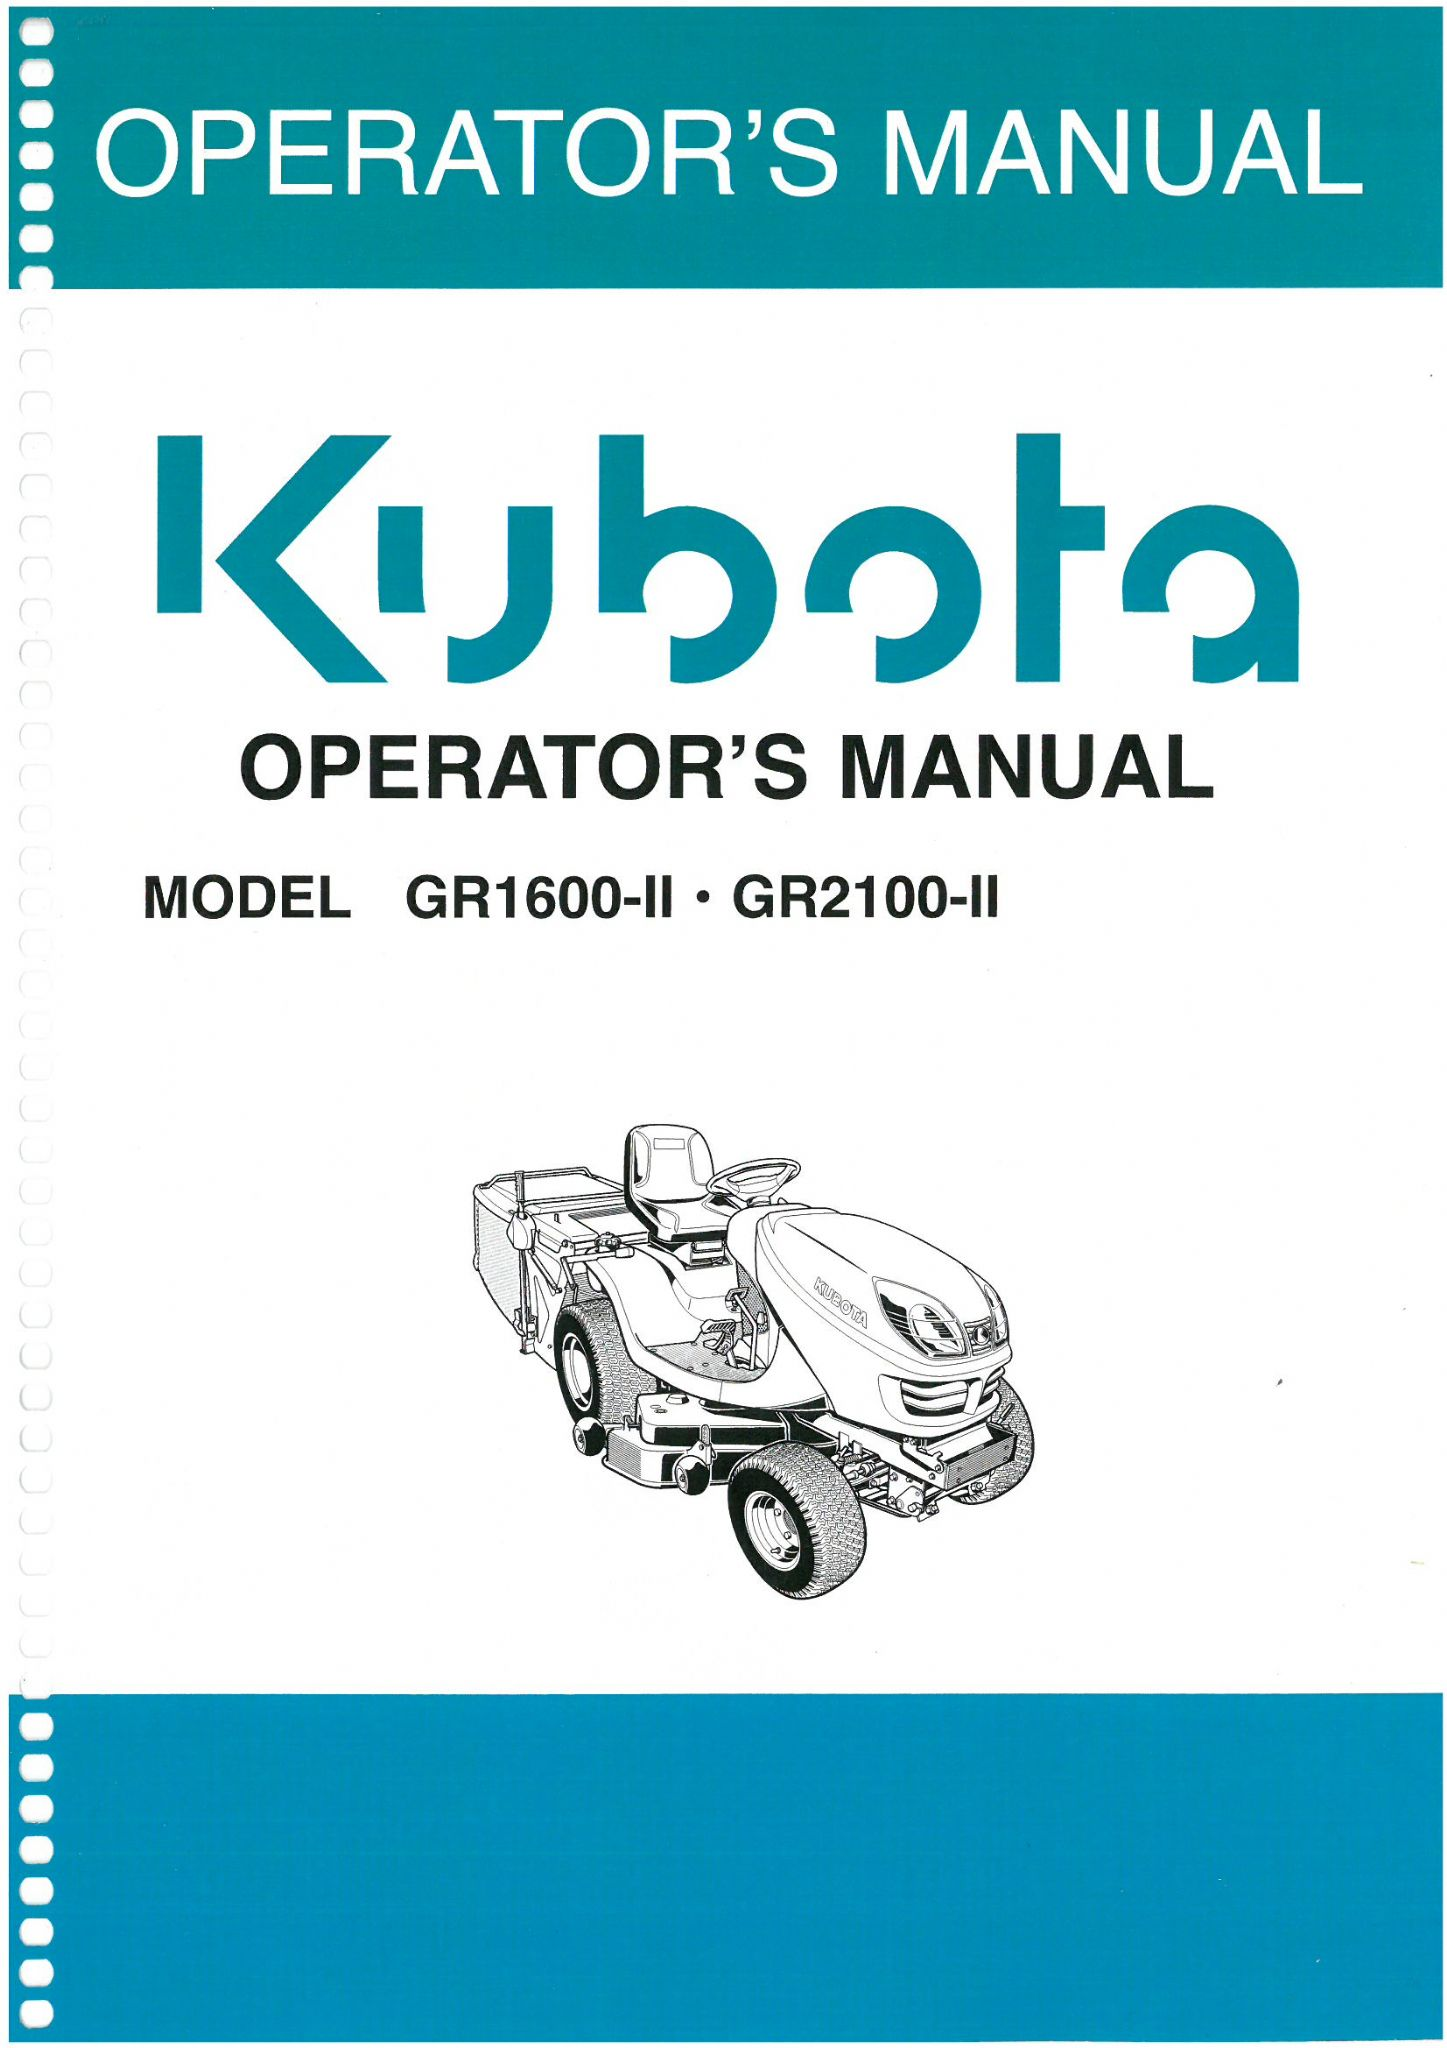 Kubota gr2100 wiring diagram wiring library woofit kubota ride on mower gr1600 ll gr2100 ll operators manual rh agrimanuals com kubota gr2120 kubota fandeluxe Choice Image